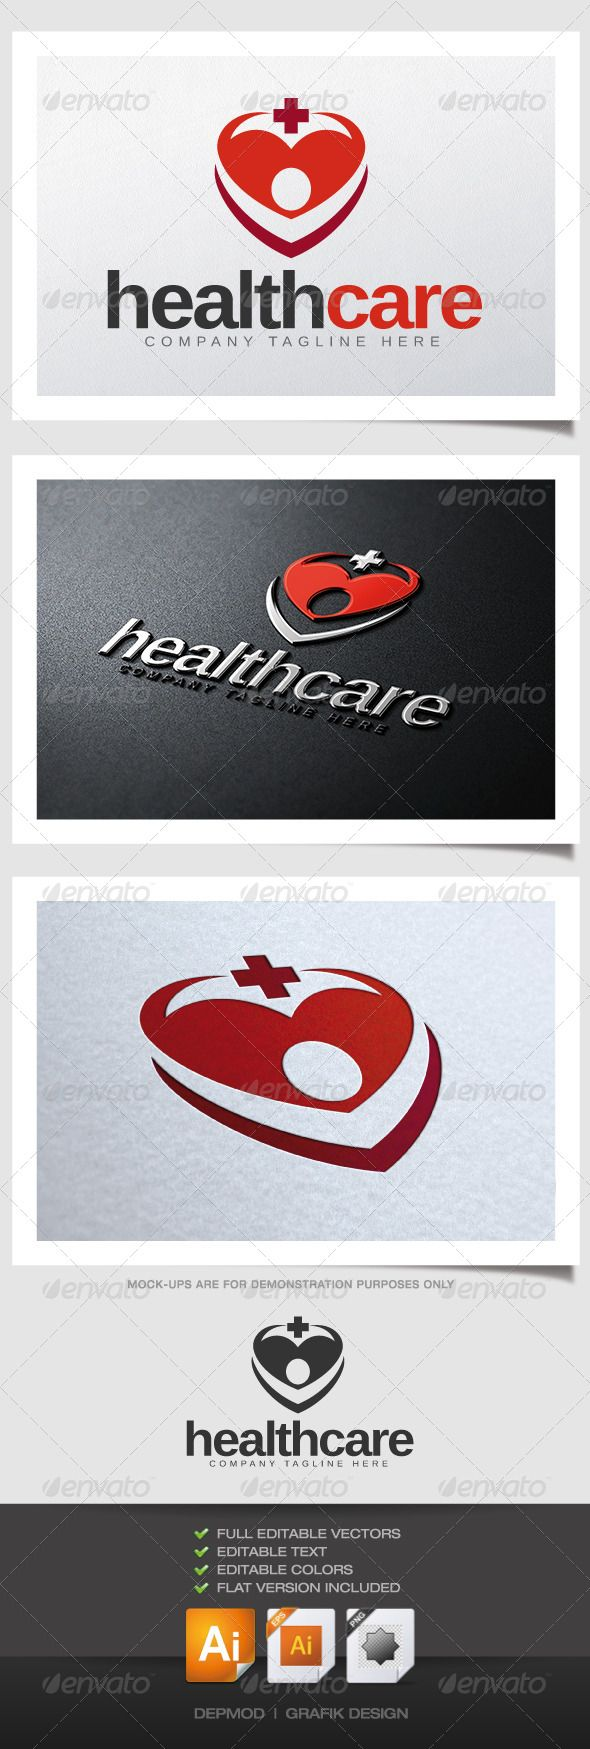 Health Care Logo V02 #GraphicRiver Heart shape with silhouette and cross. Can be used for many kind of project. Full vectors, this logo can be resize and colors can be changed easily to fit your project.